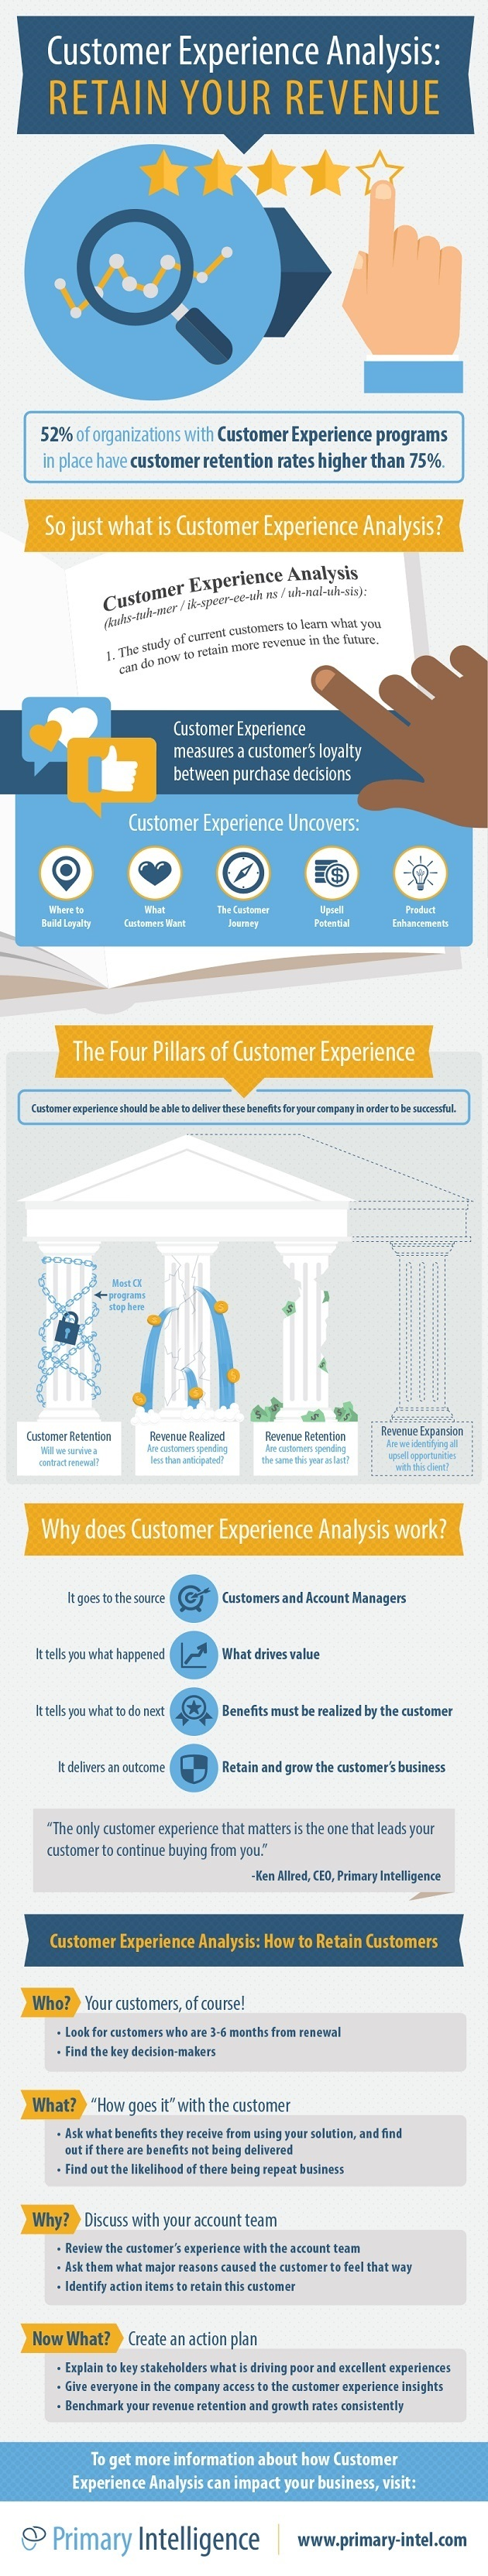 Customer Experience Analysis: How to Retain Your Customers